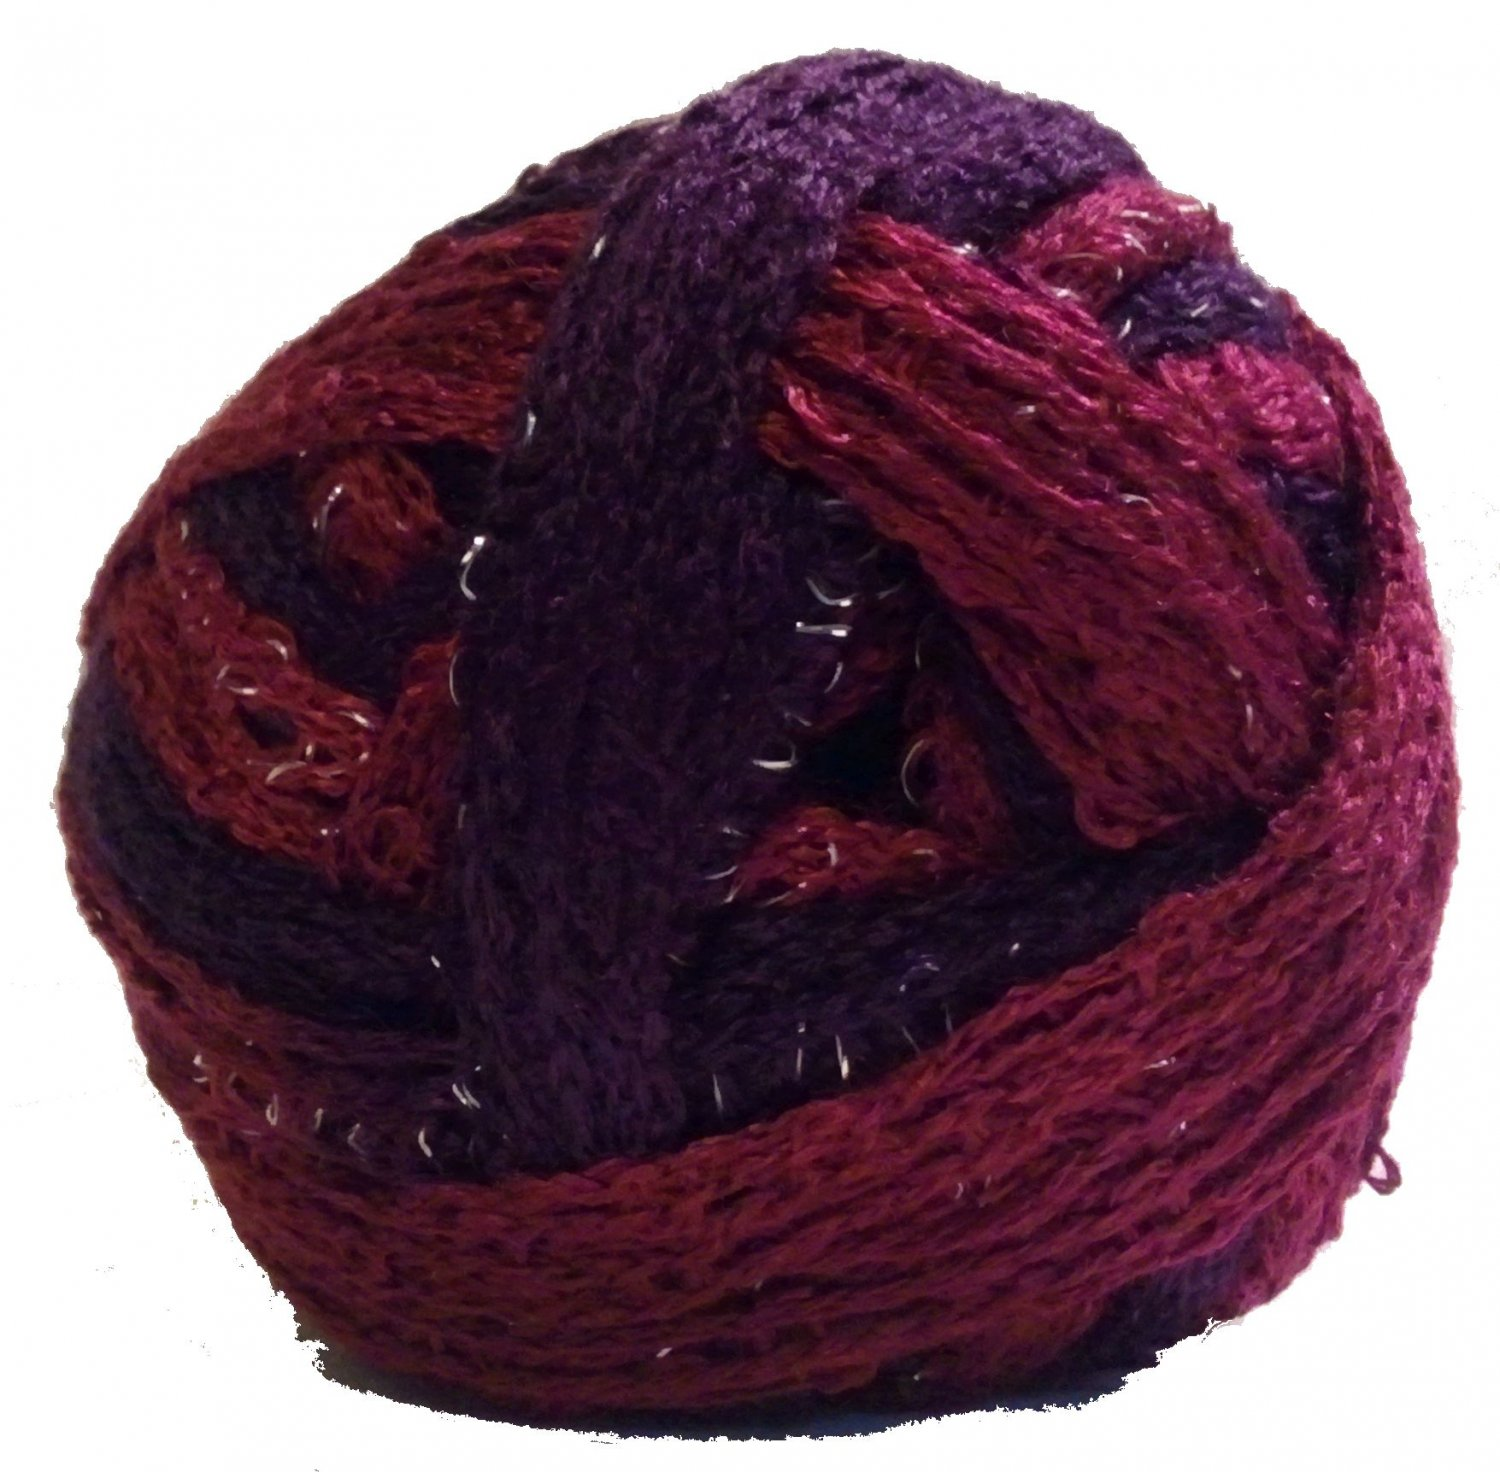 Sashay Yarn 3.5 oz Tango 1943 Super Bulky 6 Ruffle Scarf Yarn Red Fuchsia Purple Sparkly